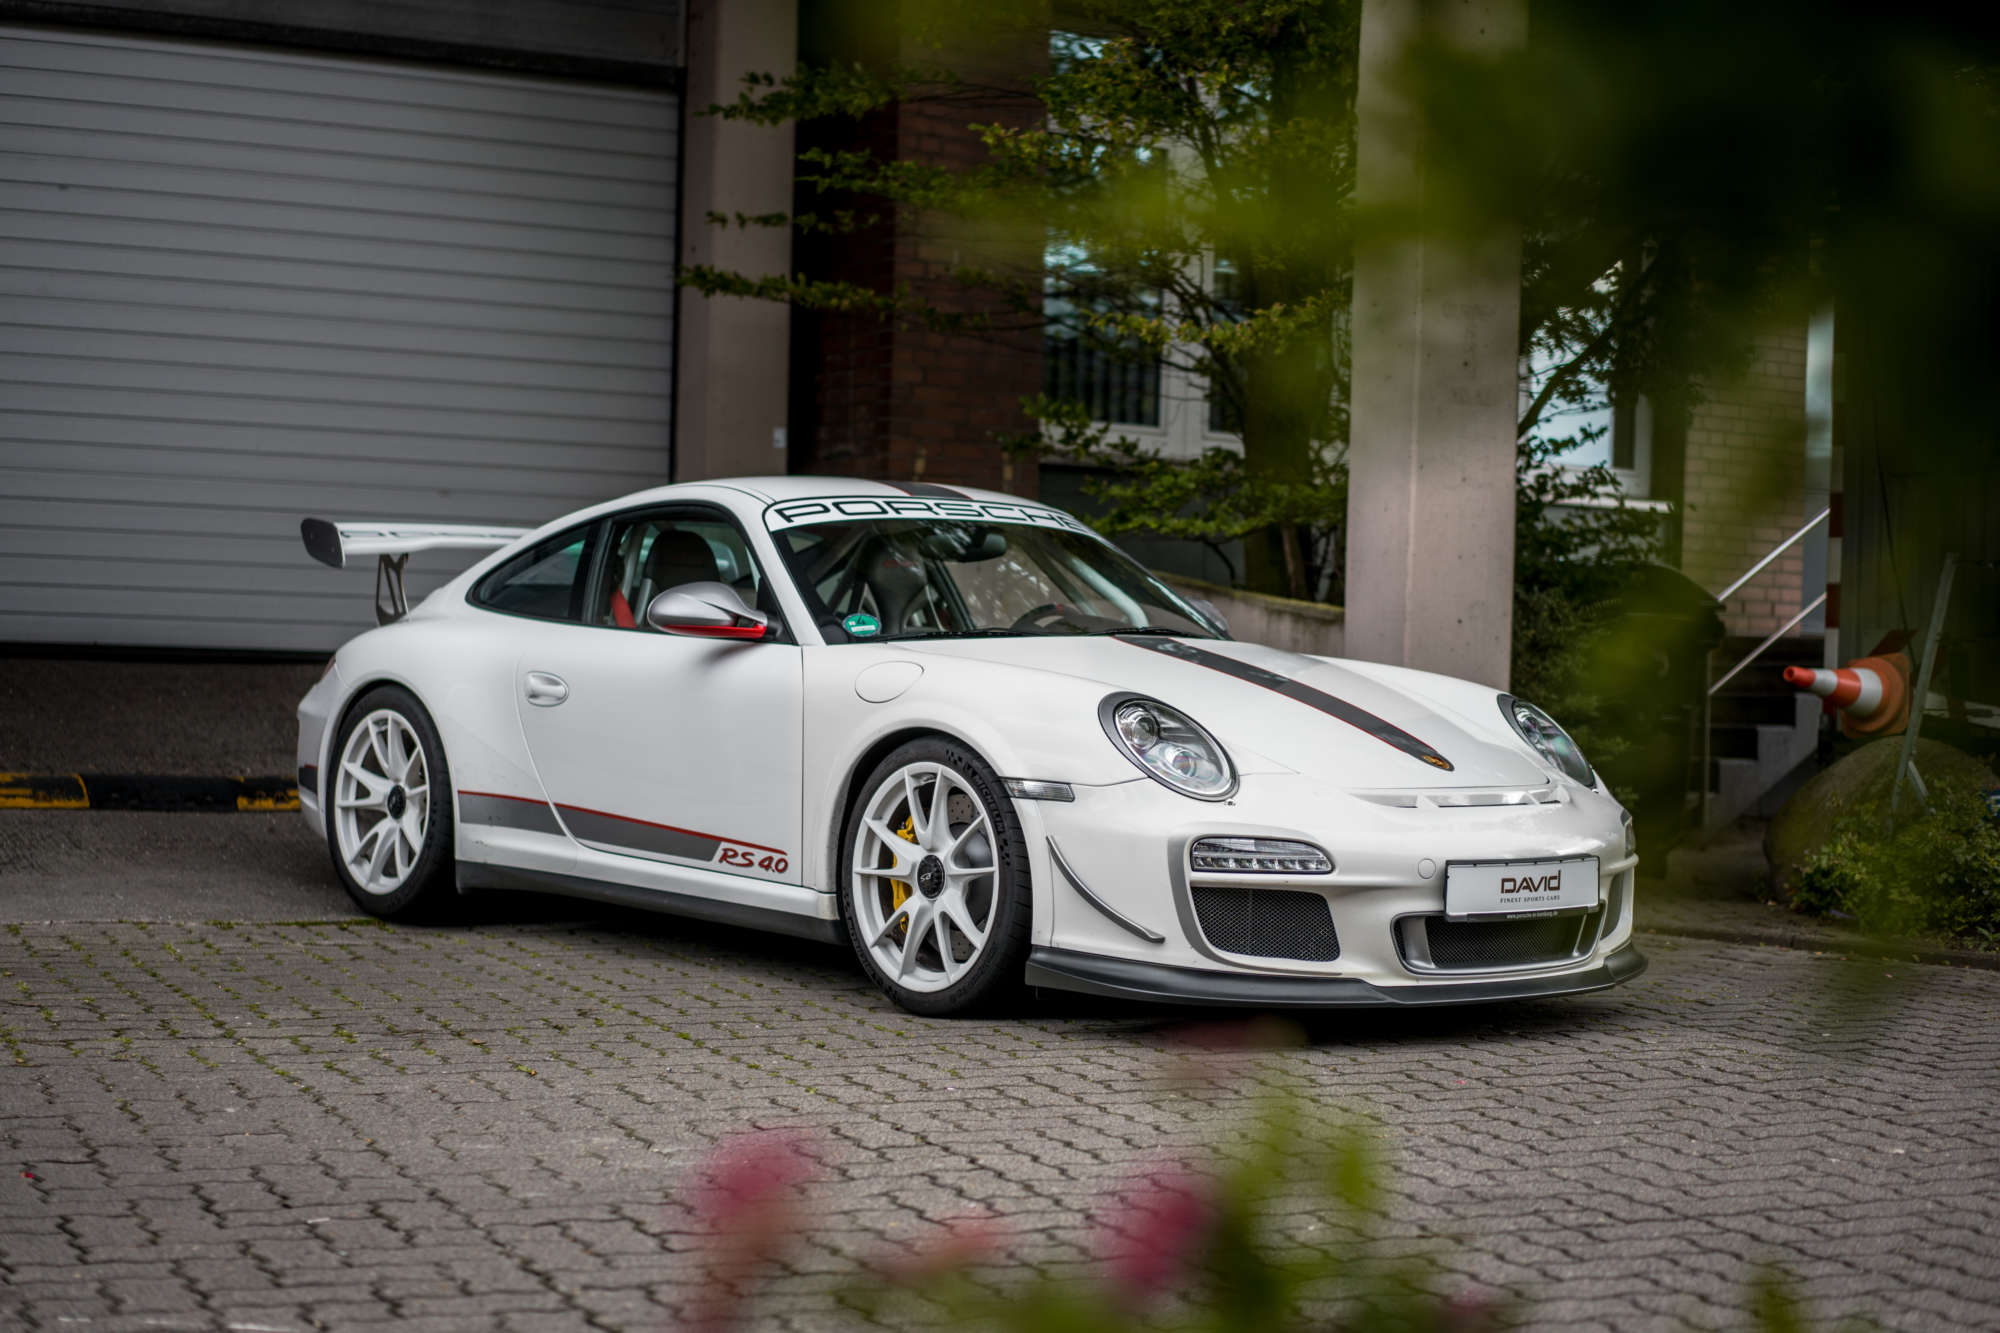 Porsche 911 997 For Sale Elferspot Marketplace For Porsche Cars